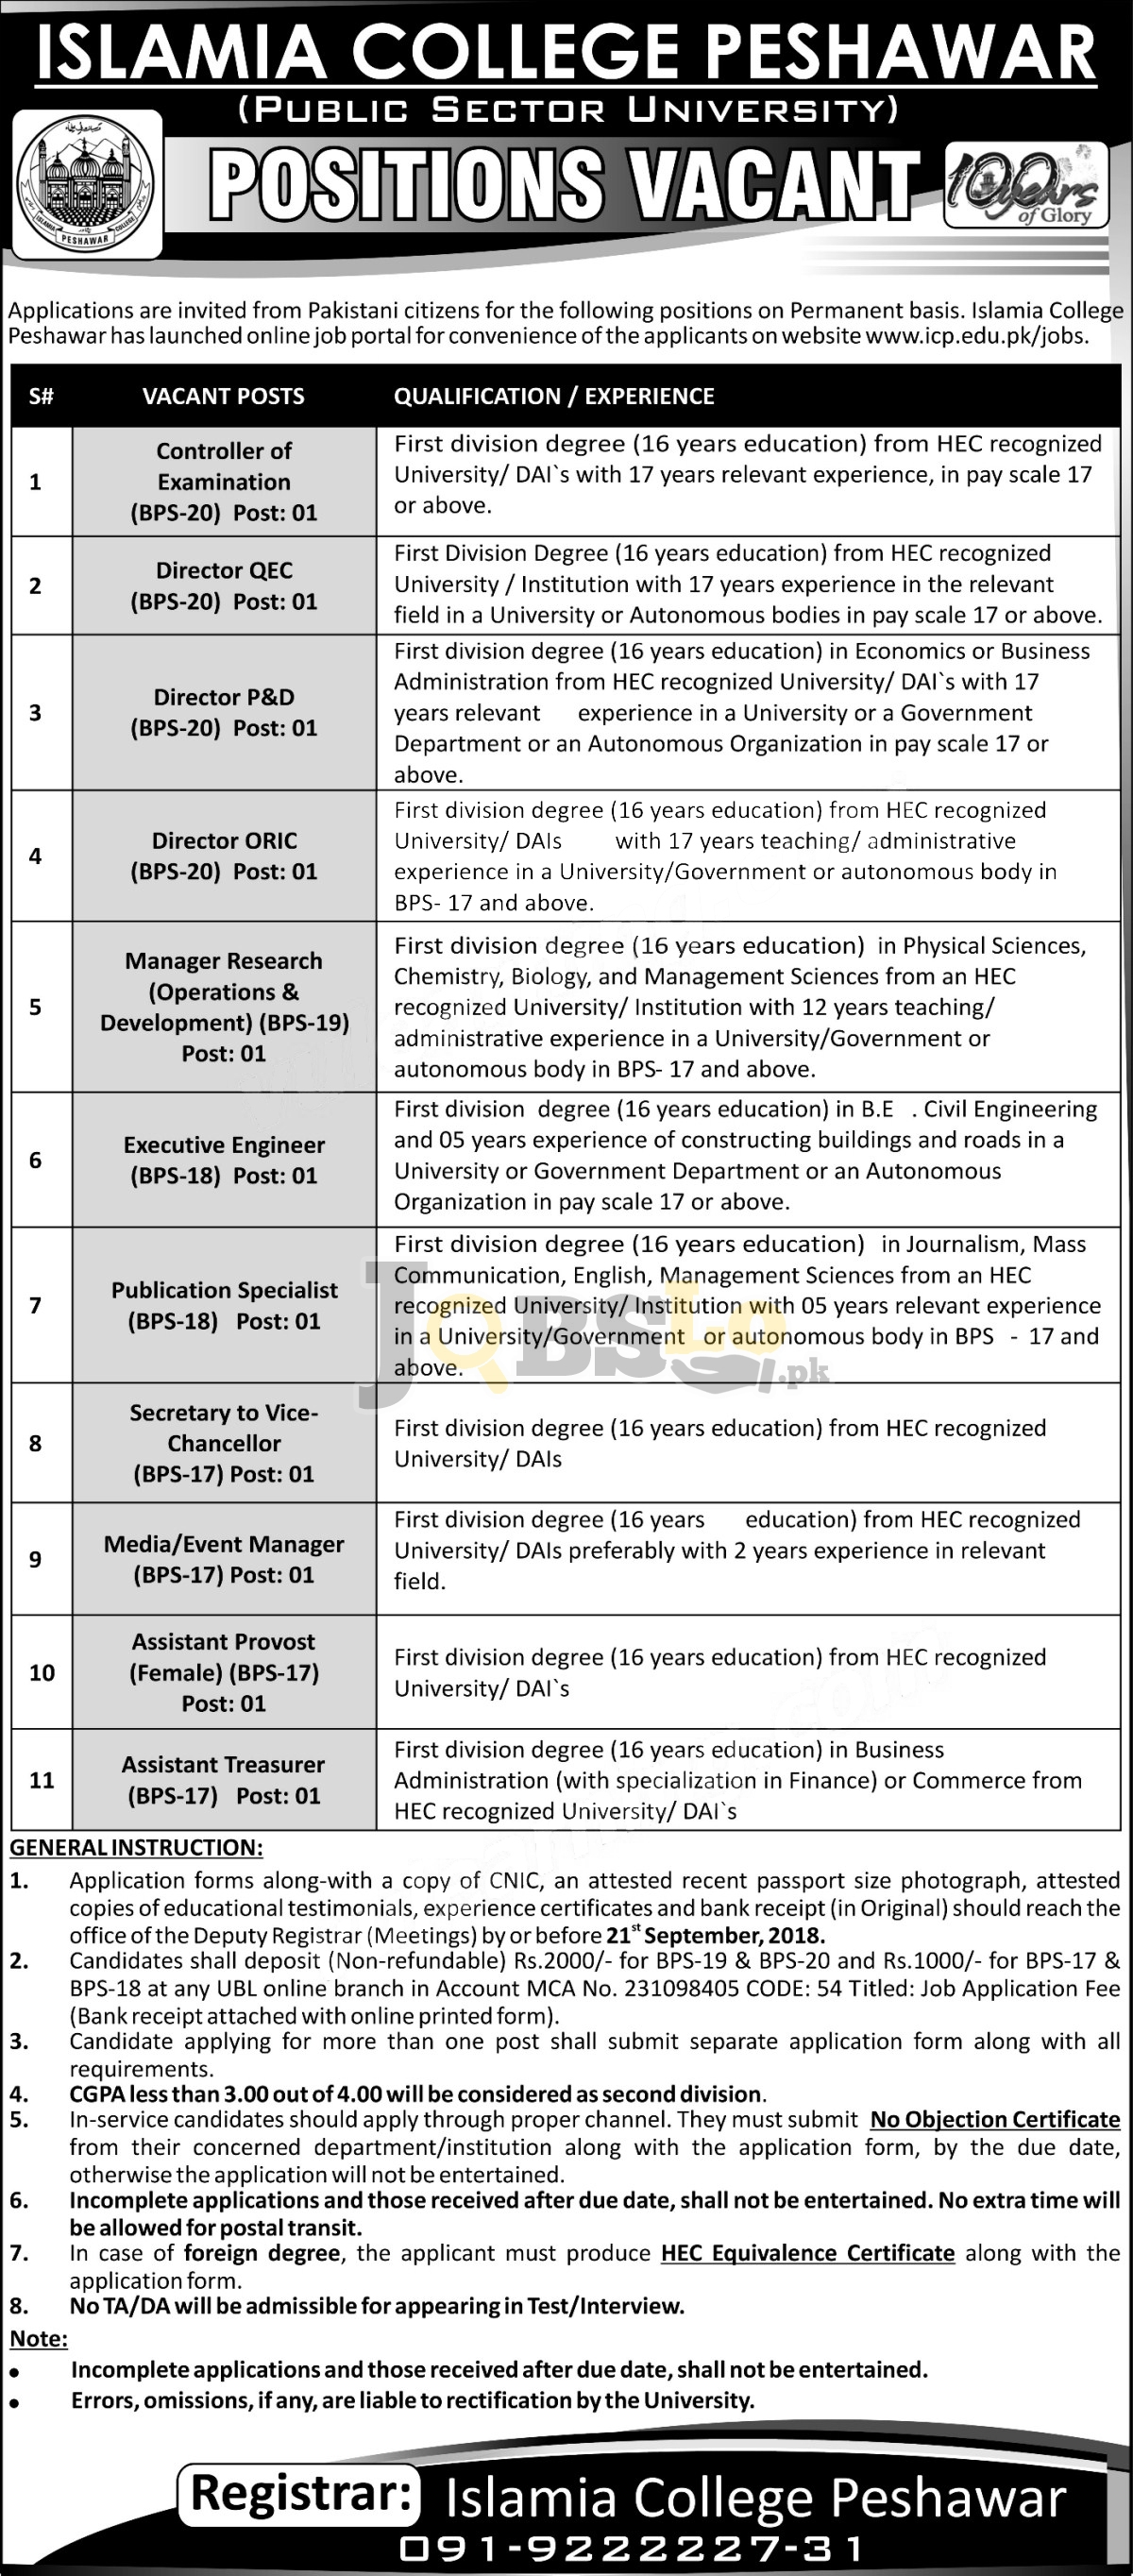 Islamia College Peshawar Jobs 2018 Online Apply For Latest Careers Oppertunities